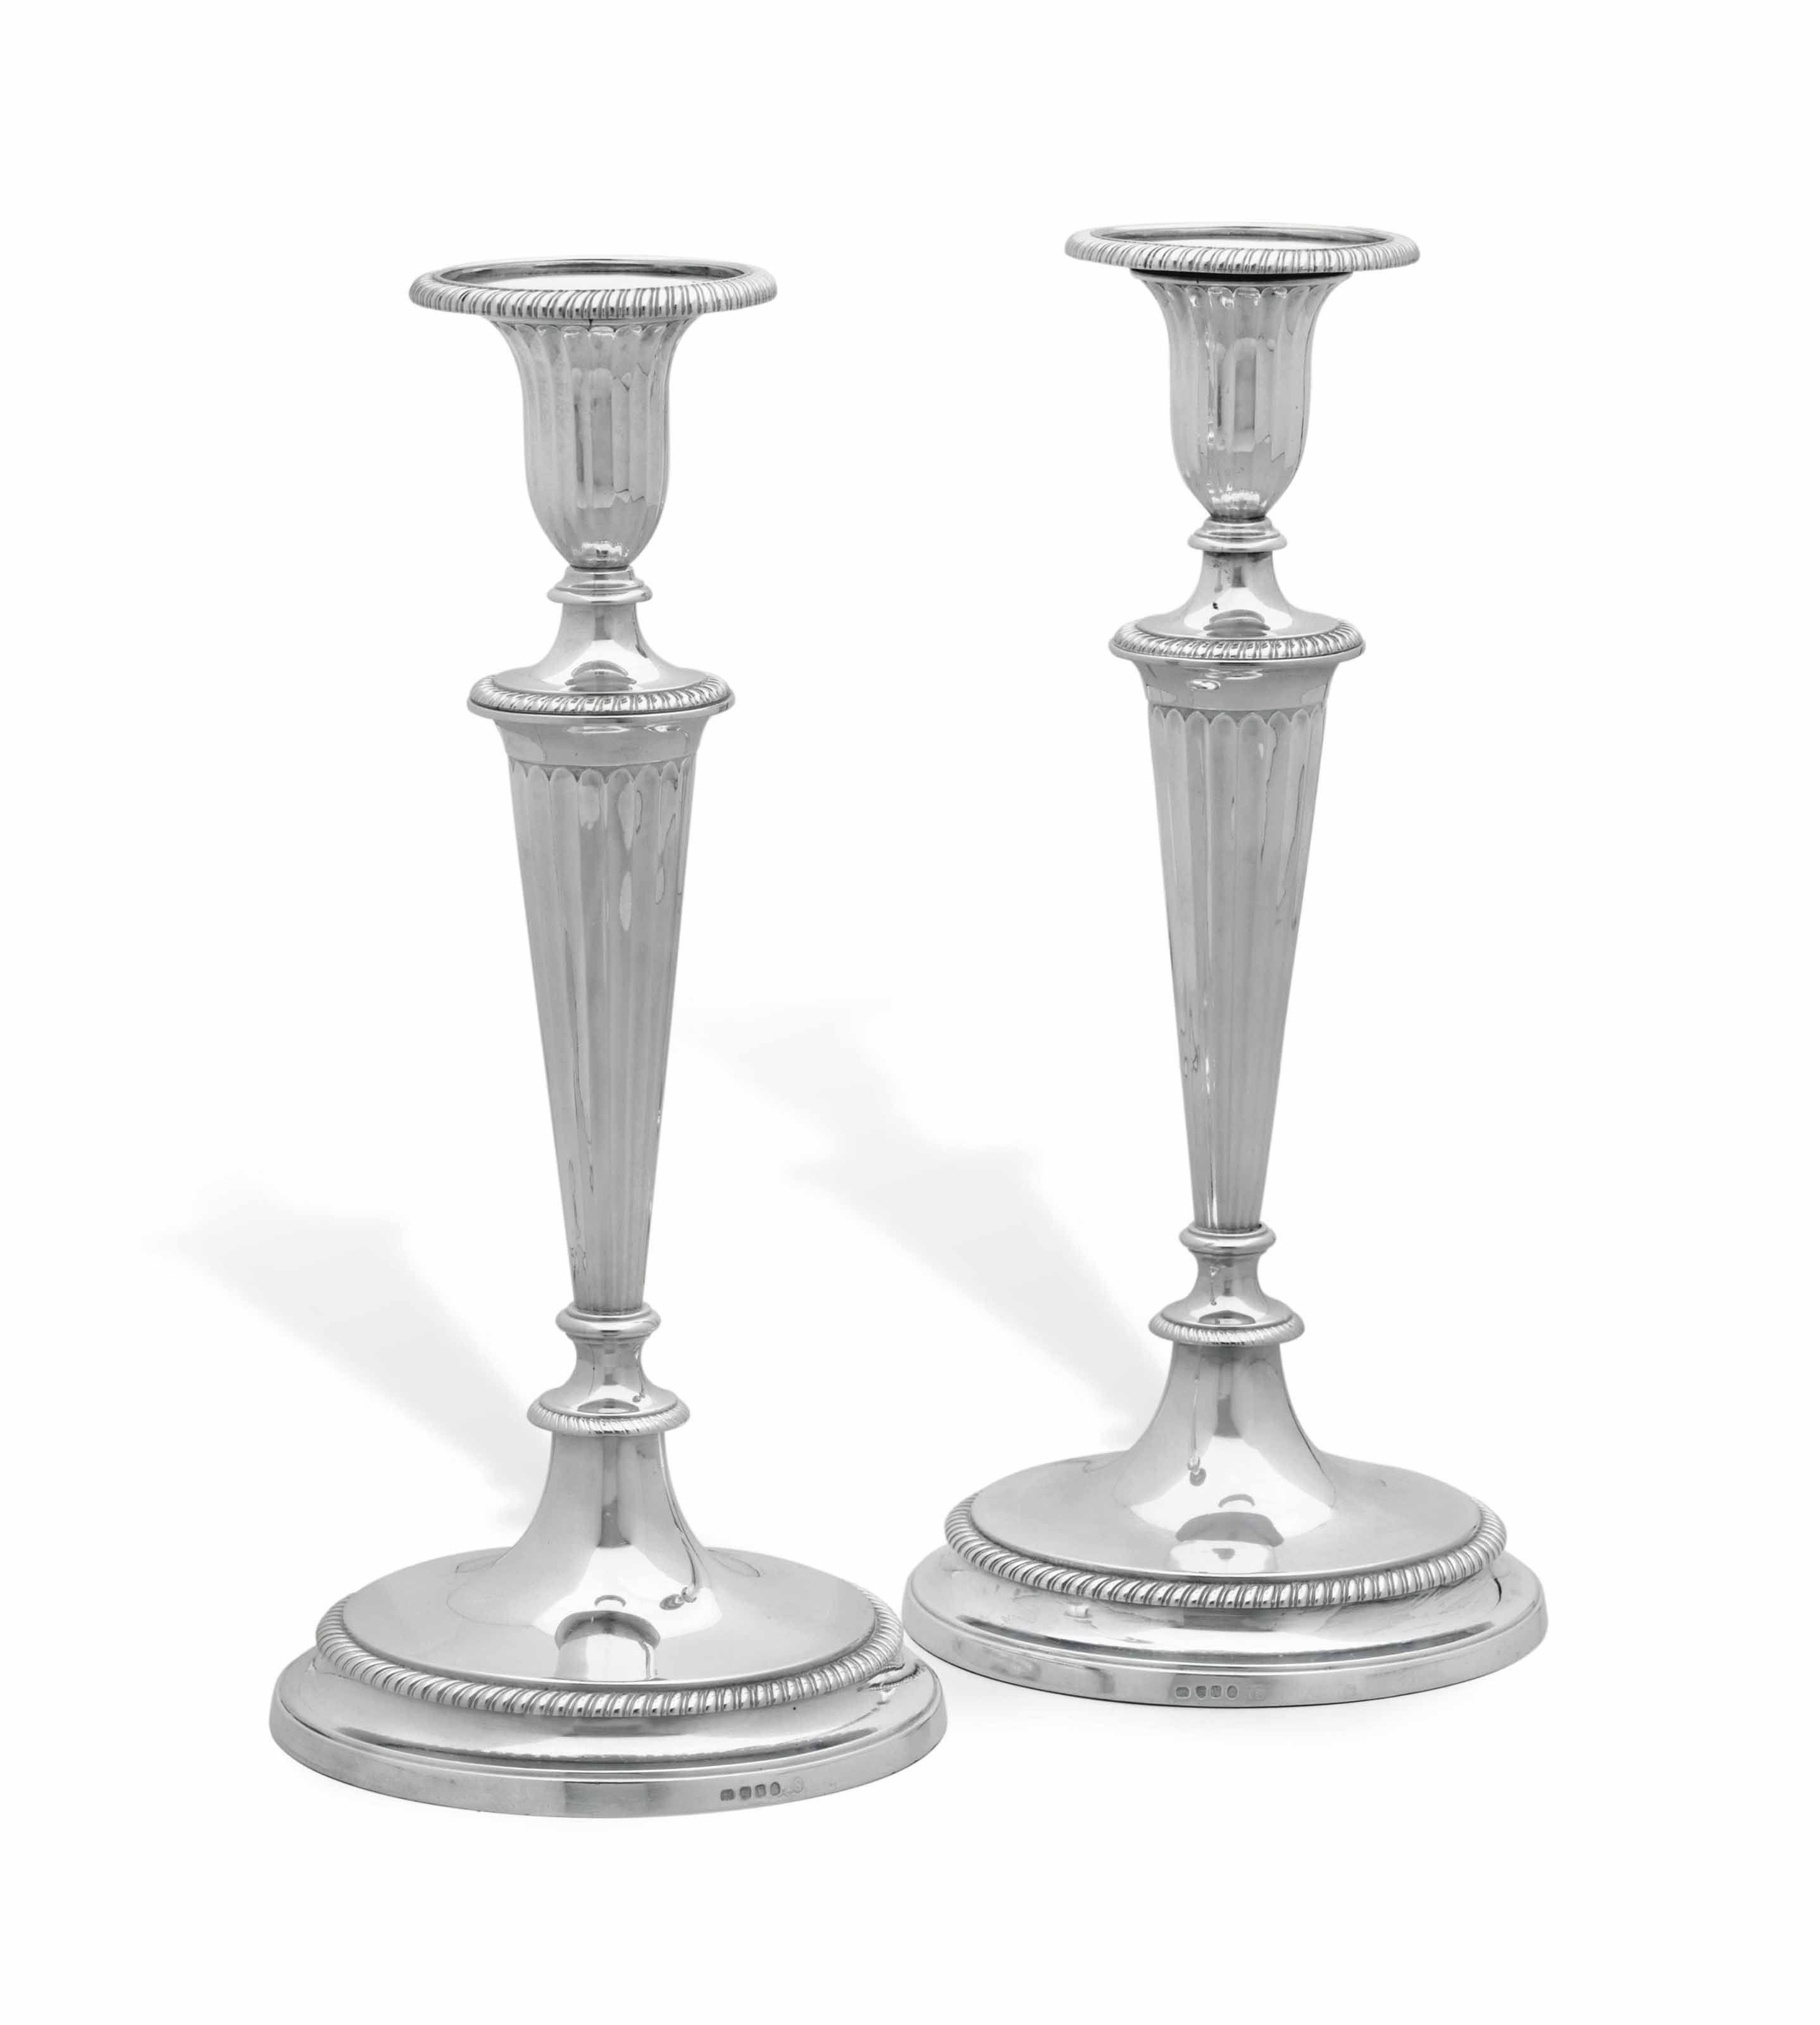 A PAIR OF GEORGE III SILVER CANDLESTICKS